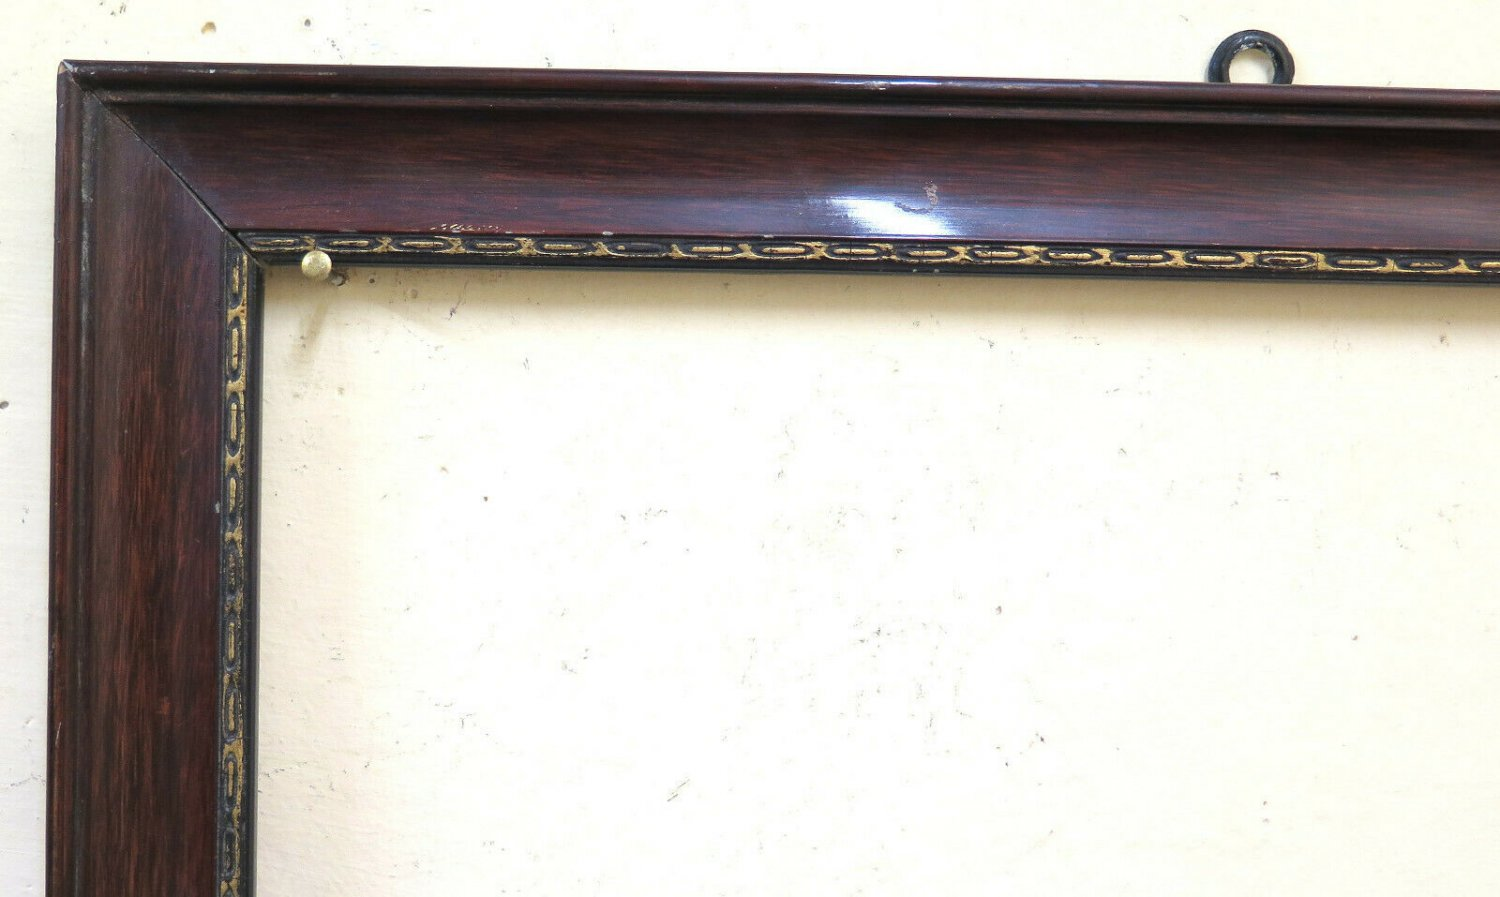 17 11/16x24 13/16in Old Frame For Paintings Painted Wooden Half '900 C GR10